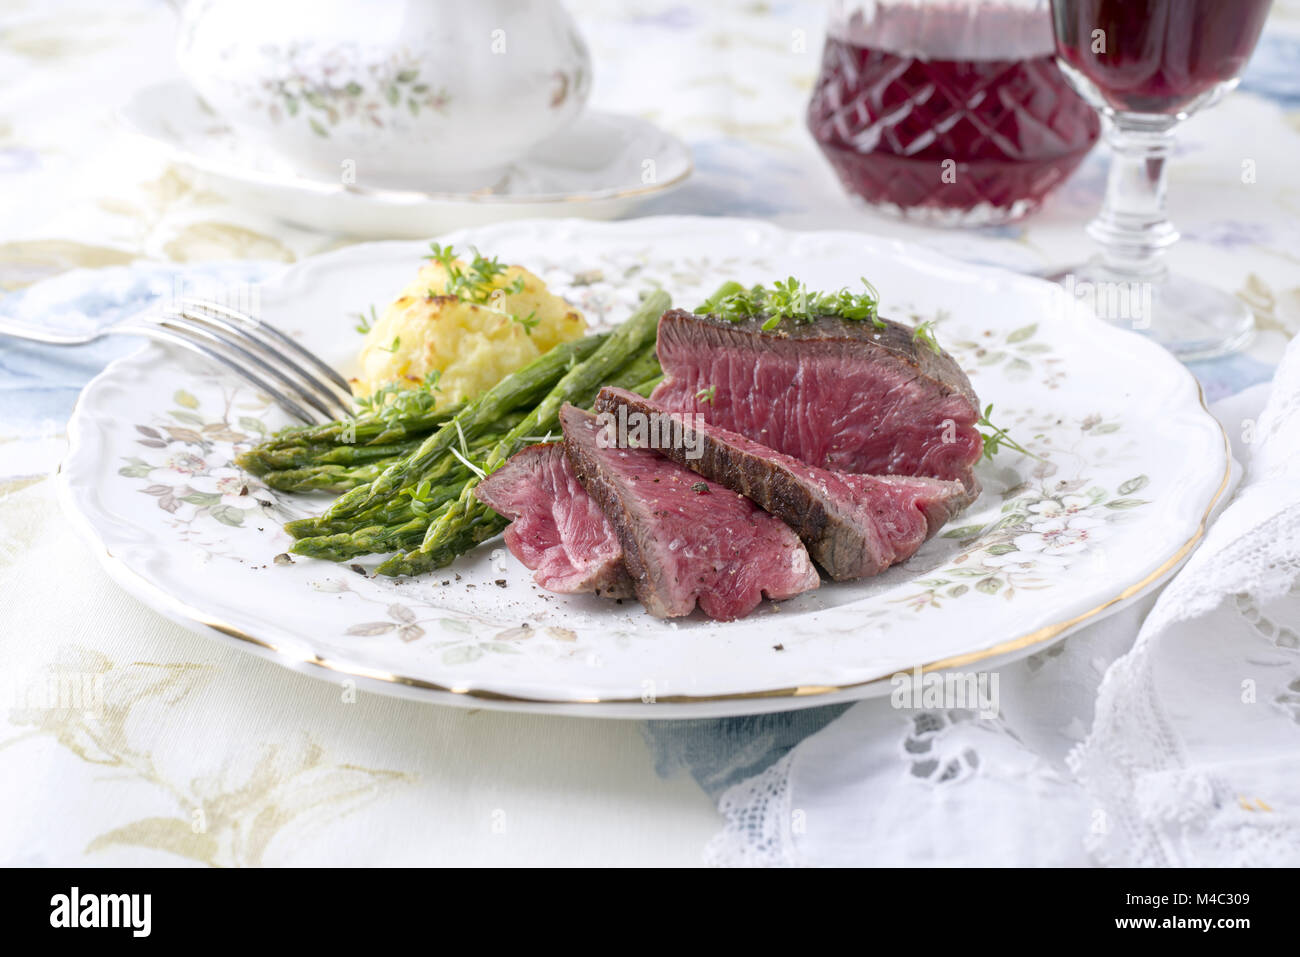 Point Steak with Green Asparagus and Mashed Potatoes - Stock Image